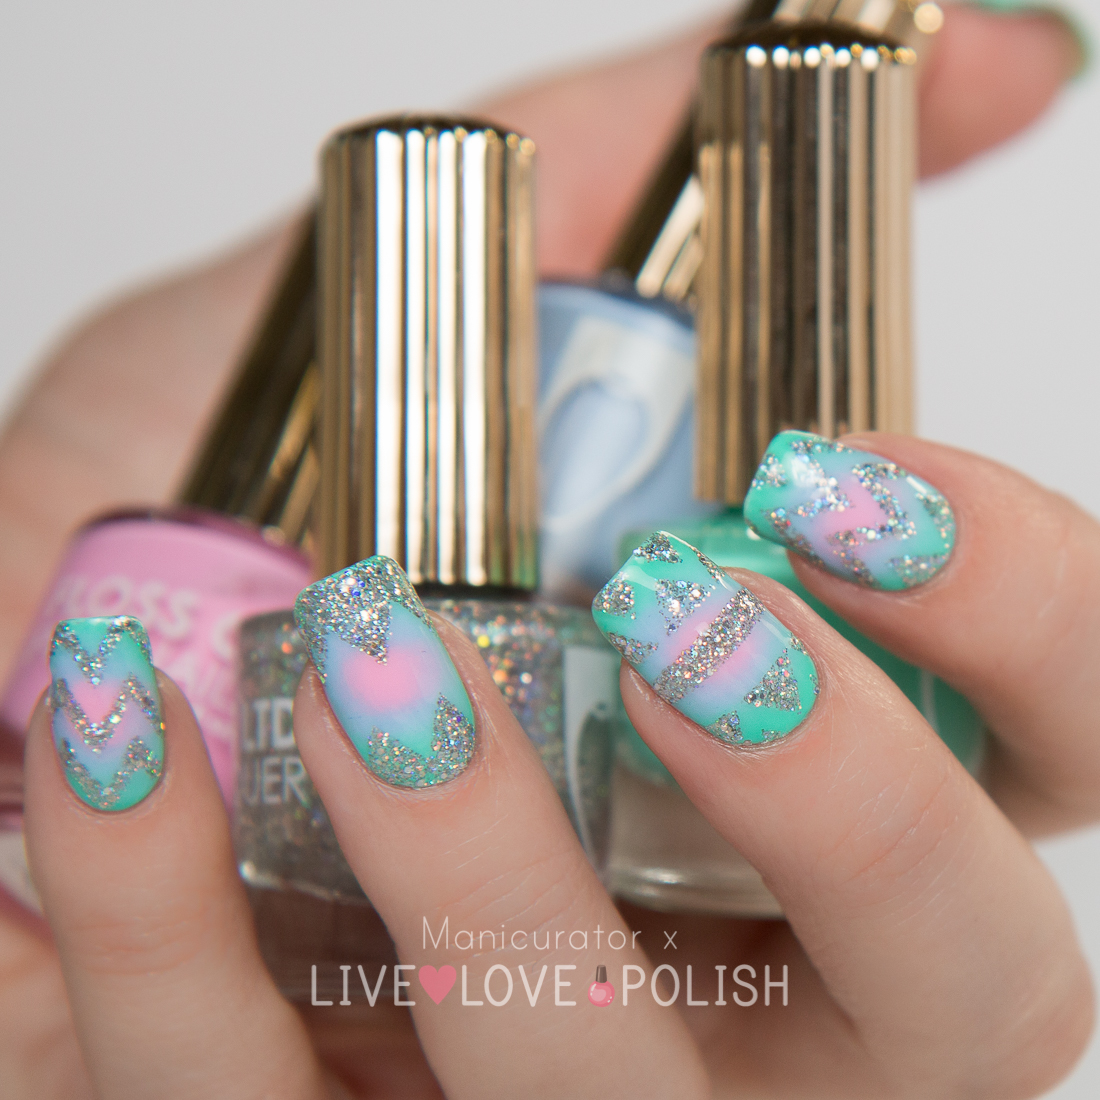 Floss-Gloss-Circular-Gradient-Wet-Perf-Dimepiece-Angel-Nail-Art